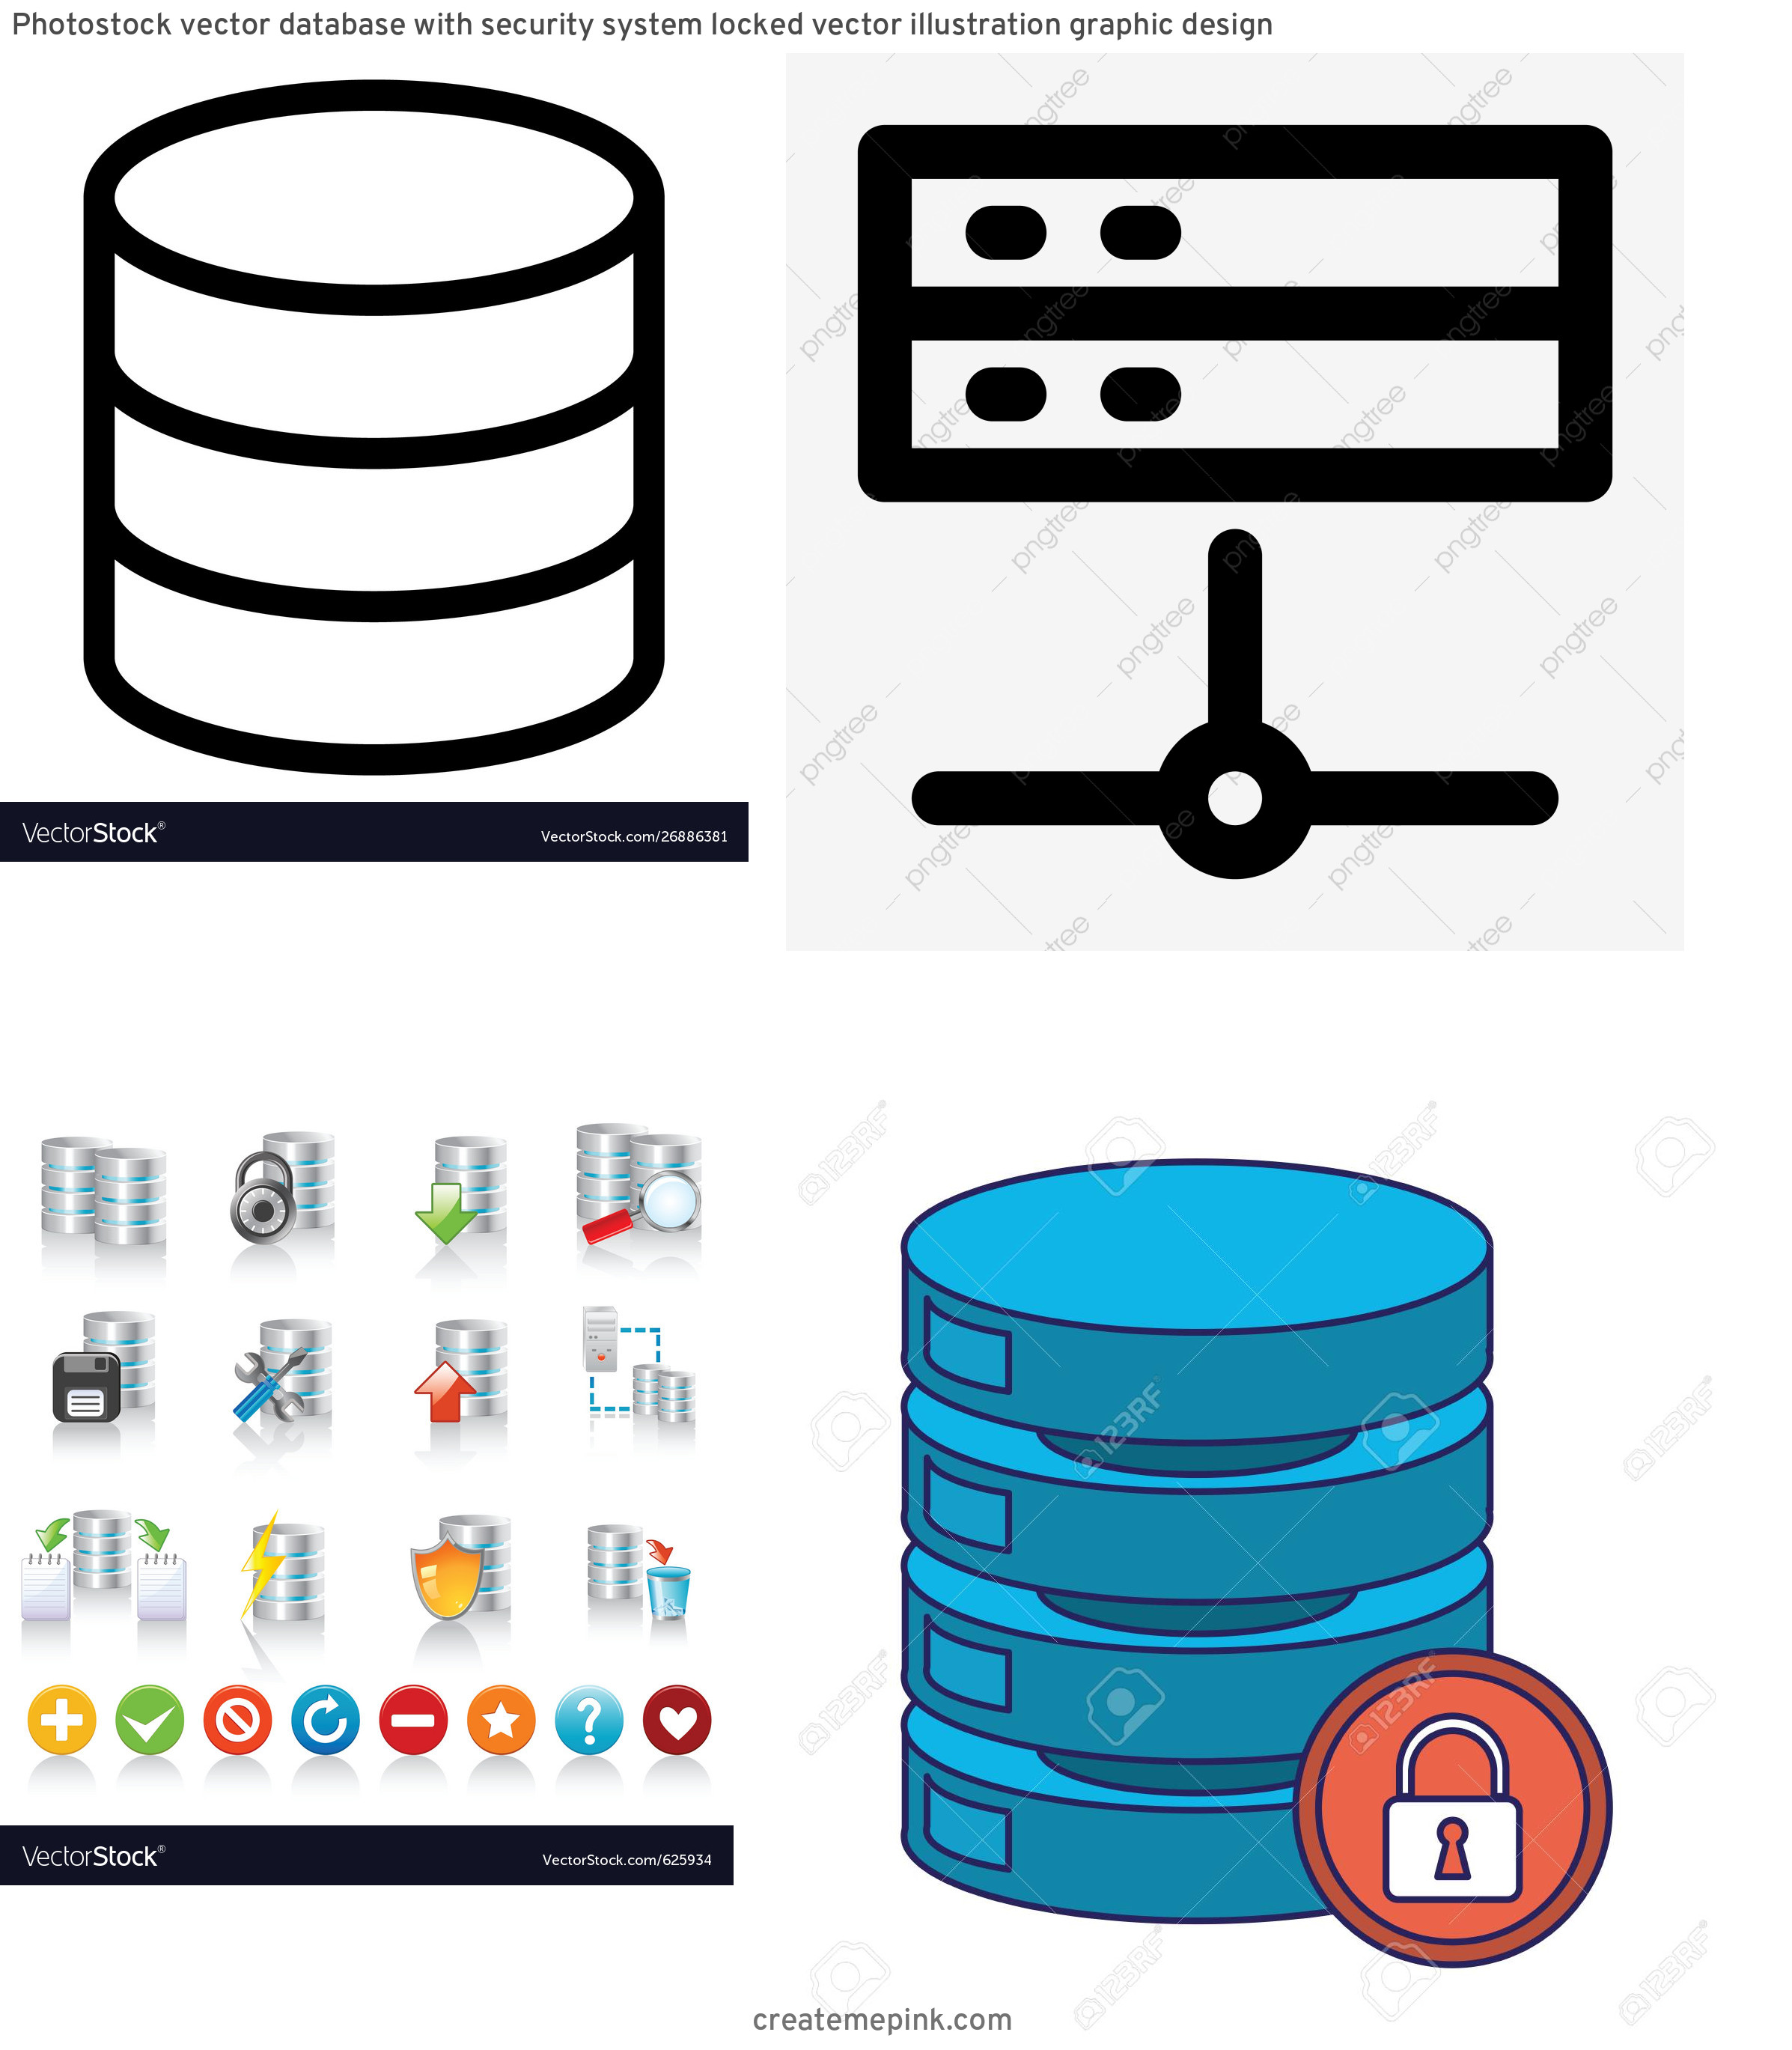 Database Vector Art: Photostock Vector Database With Security System Locked Vector Illustration Graphic Design